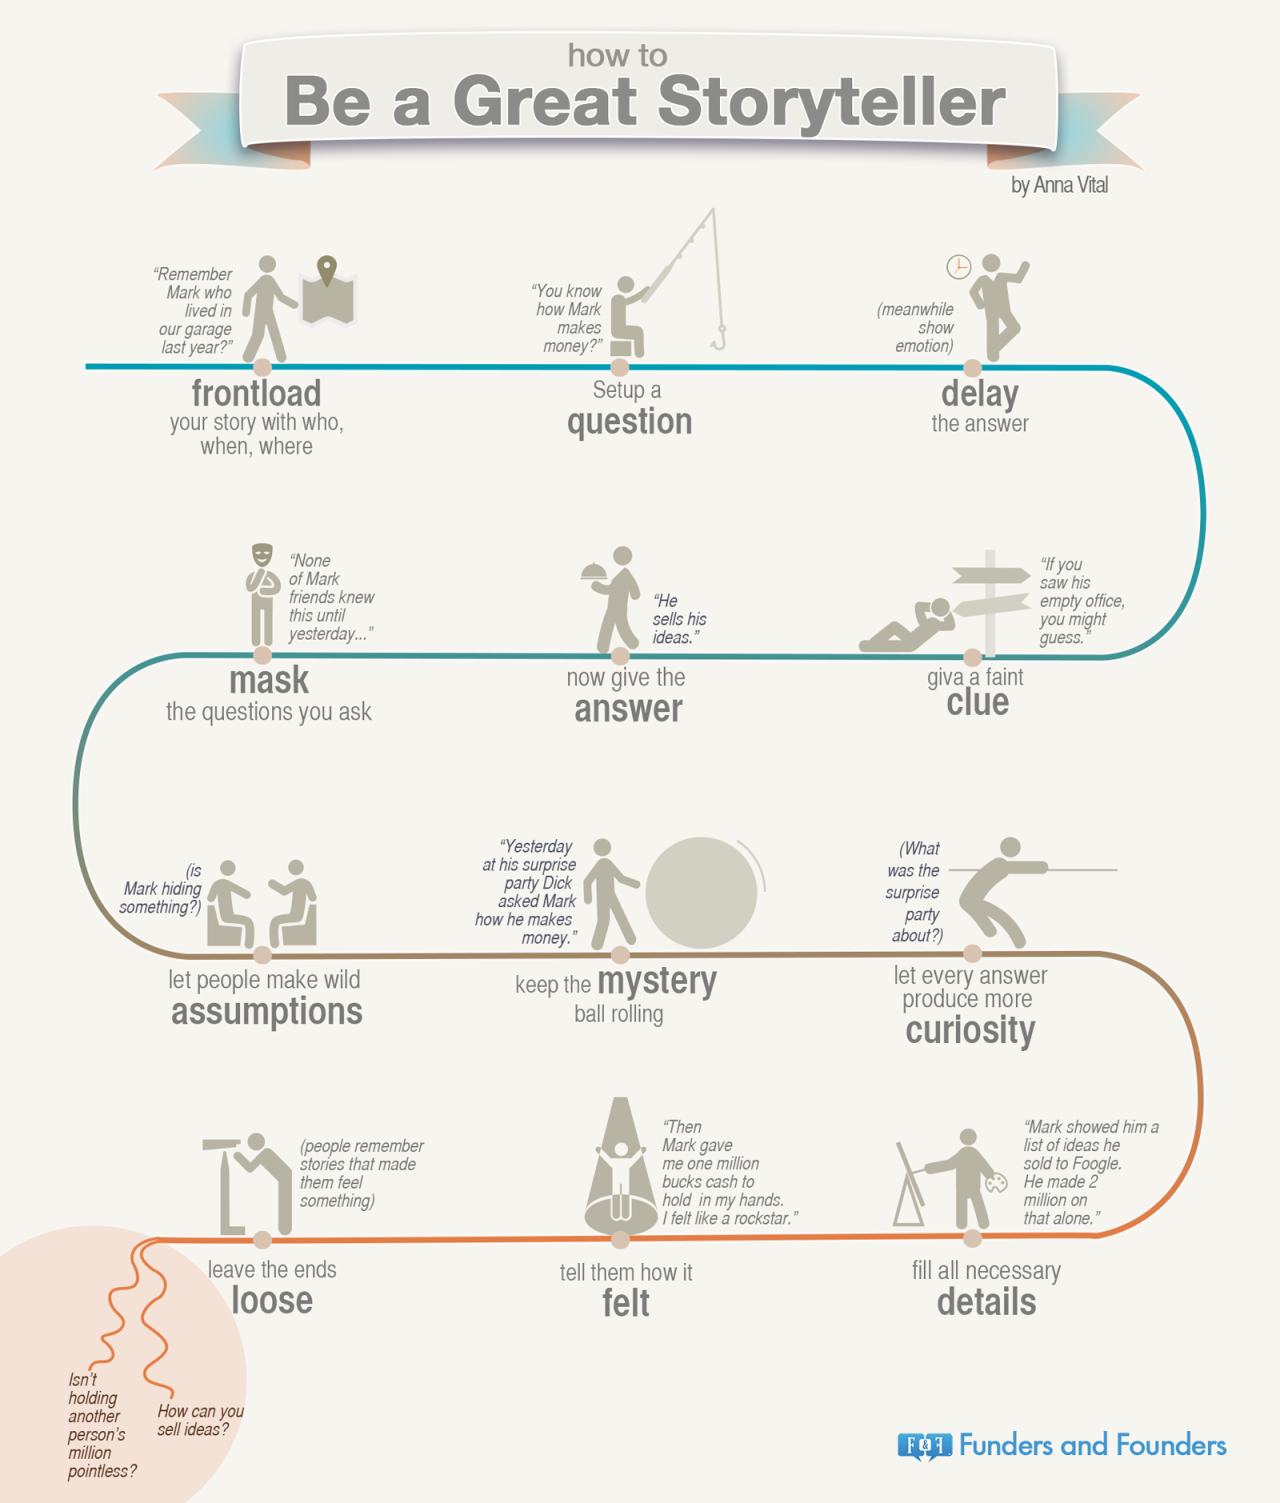 how-to-be-a-great-storyteller-infographic